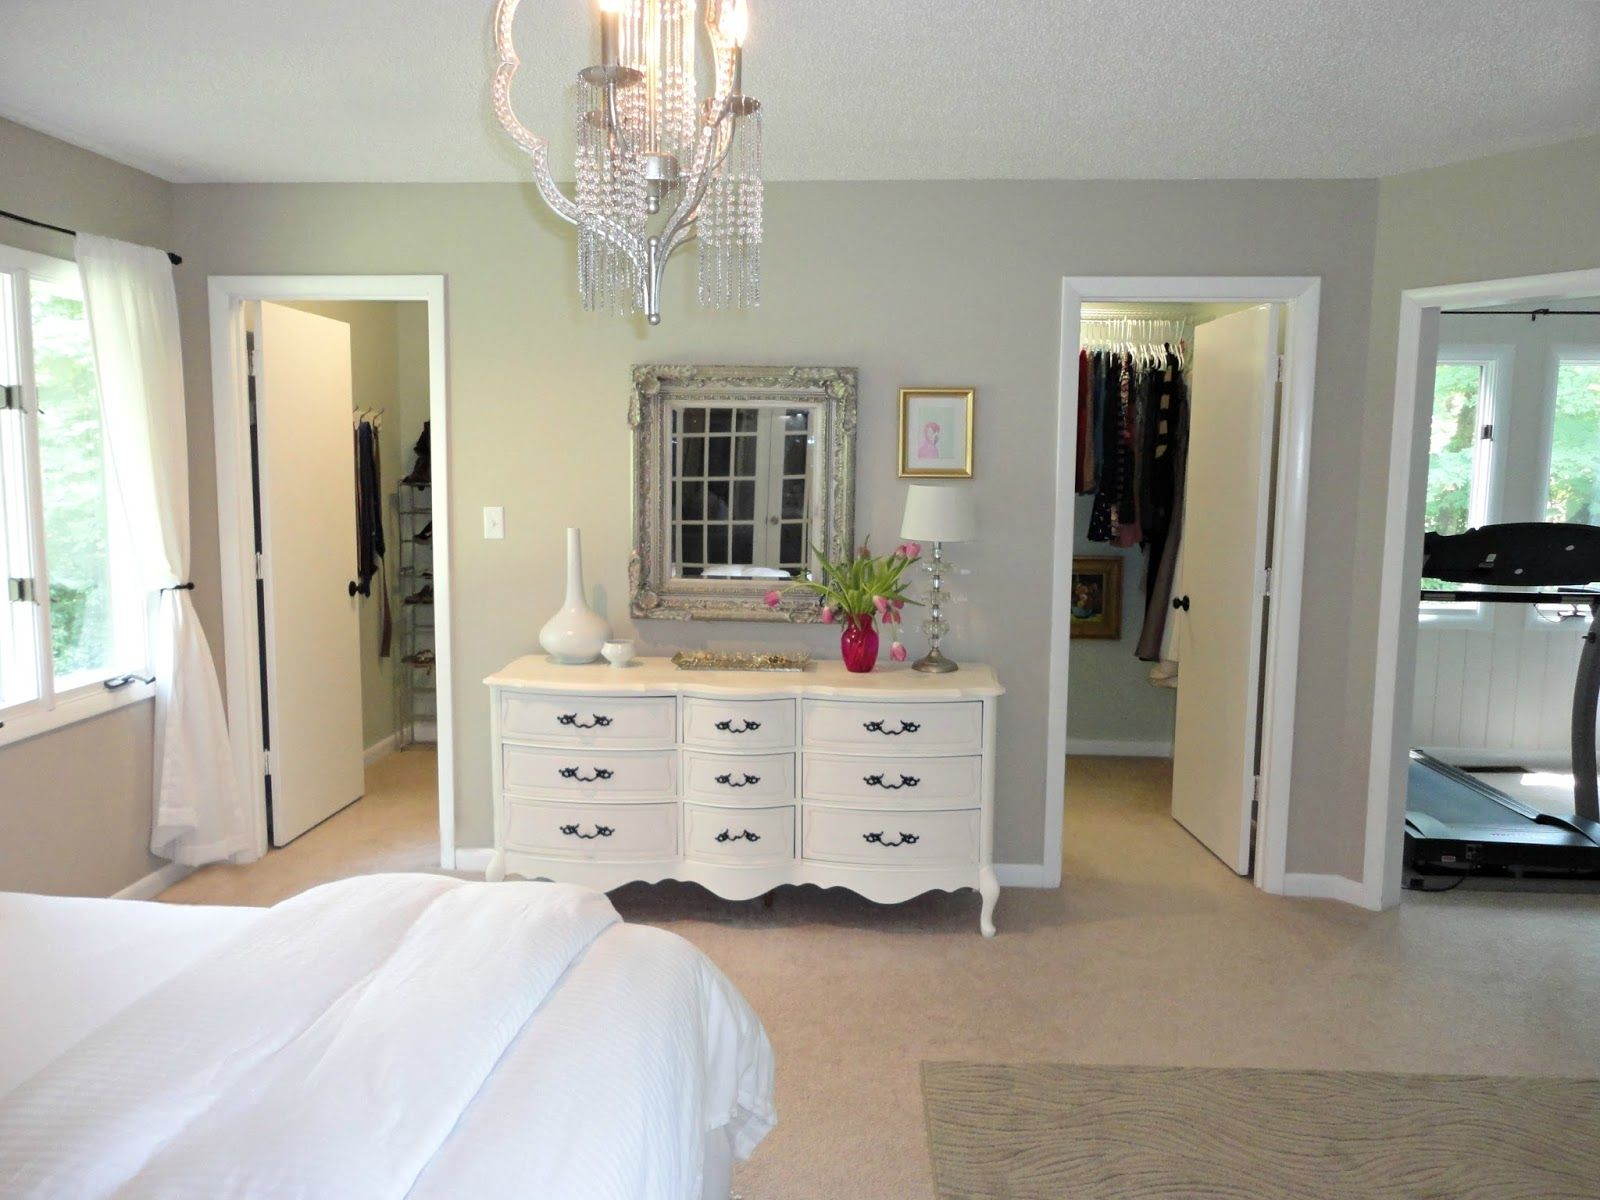 Decorating Mistakes & Lessons: 4 Bedroom, 40 Ways  Master bedroom